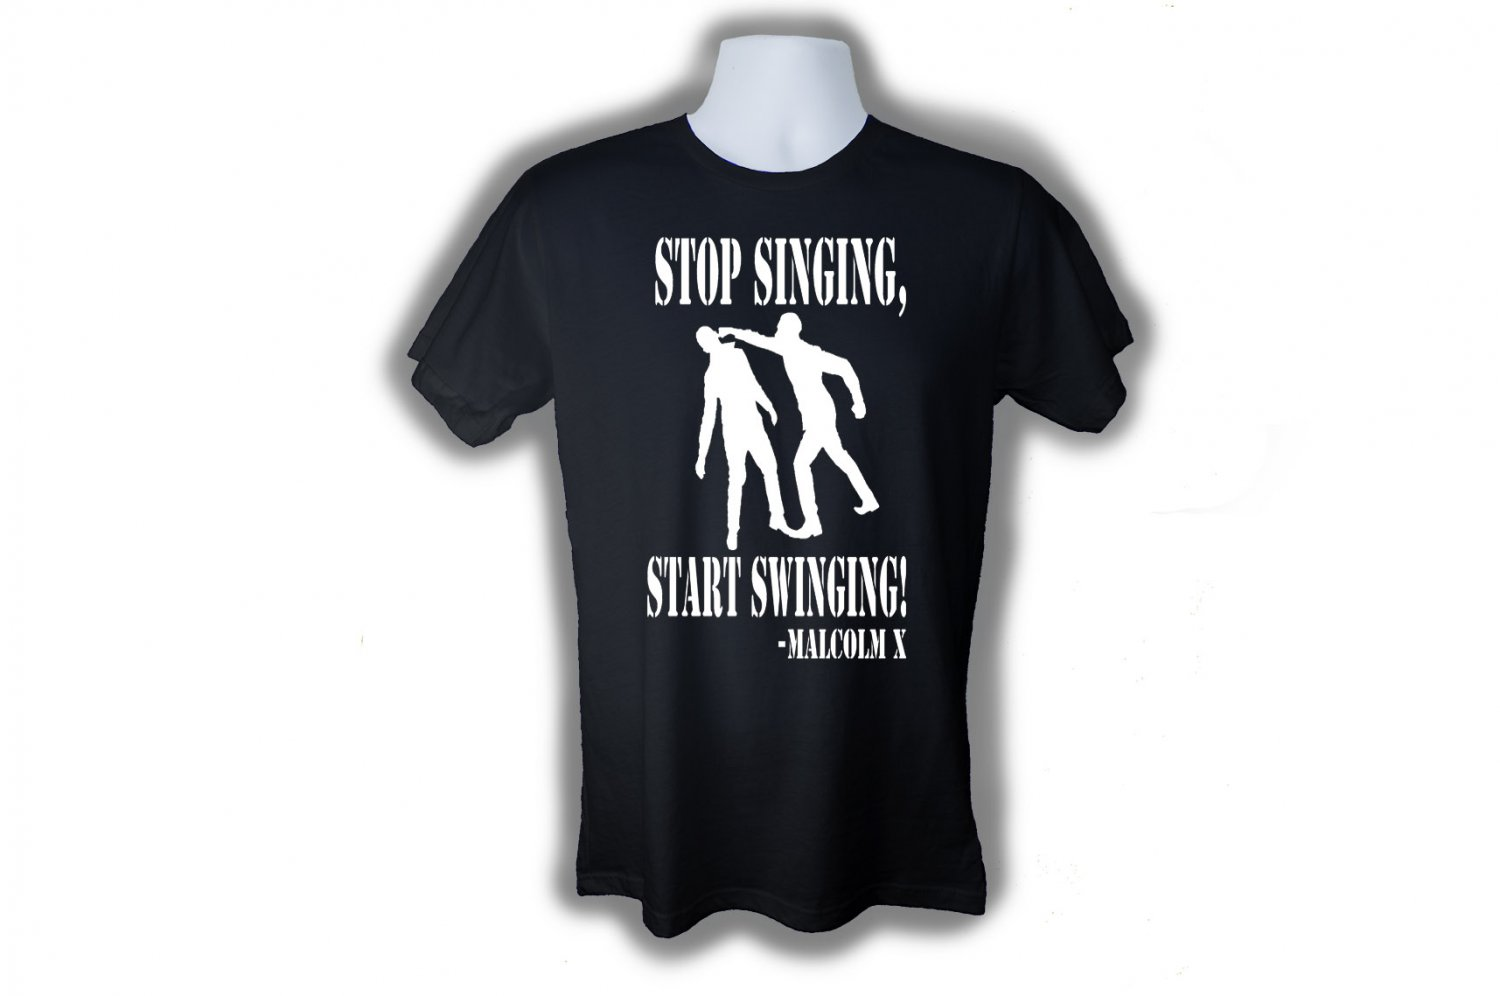 STOP SINGING AND START SWINGING MALCOLM X T-SHIRT (2XL)